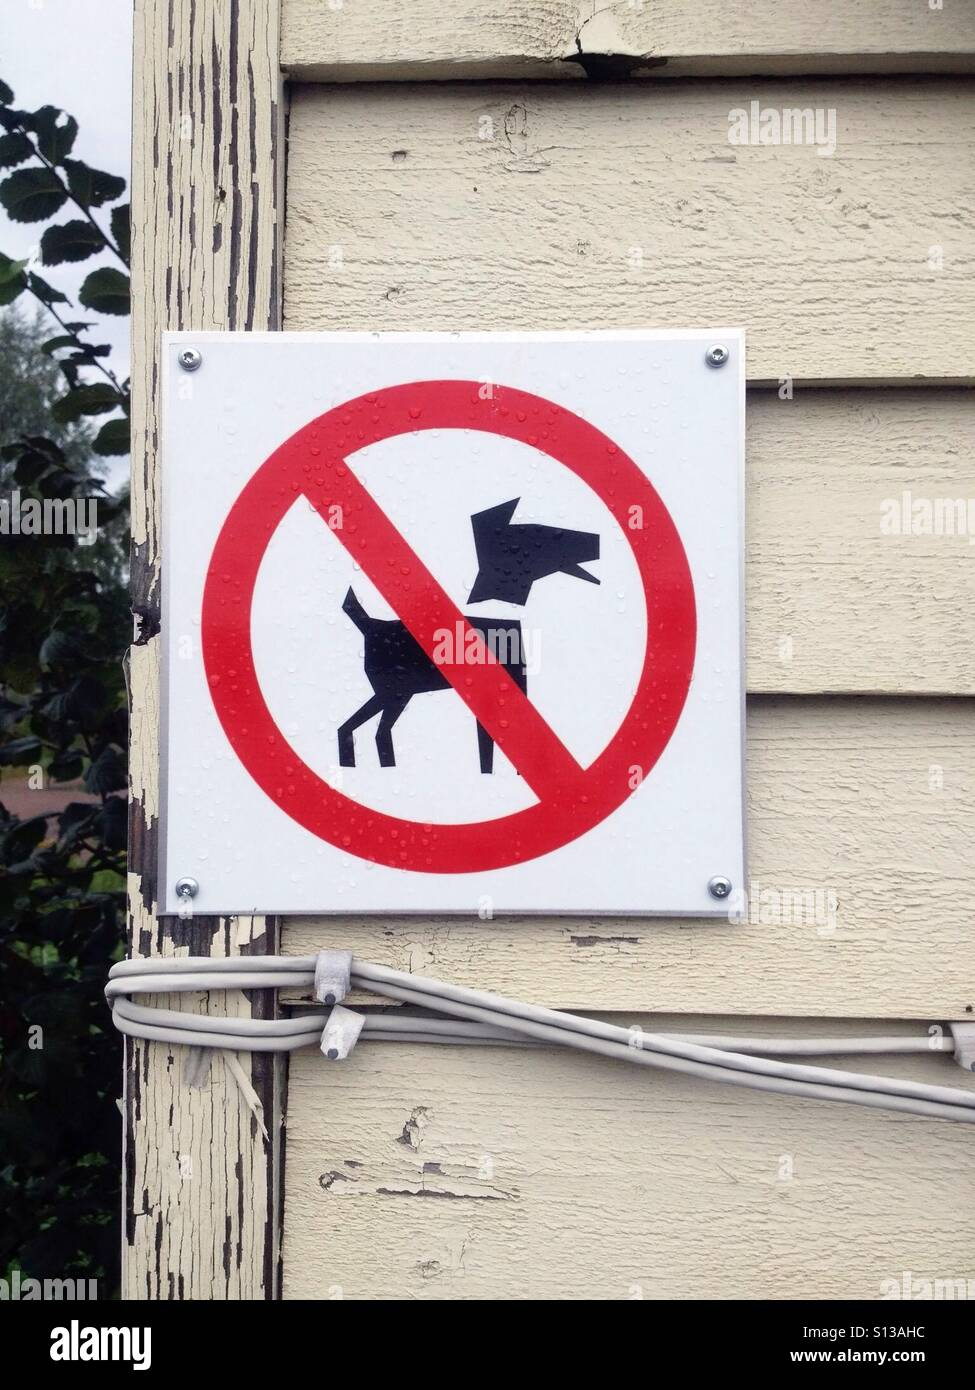 No dogs allowed - Stock Image